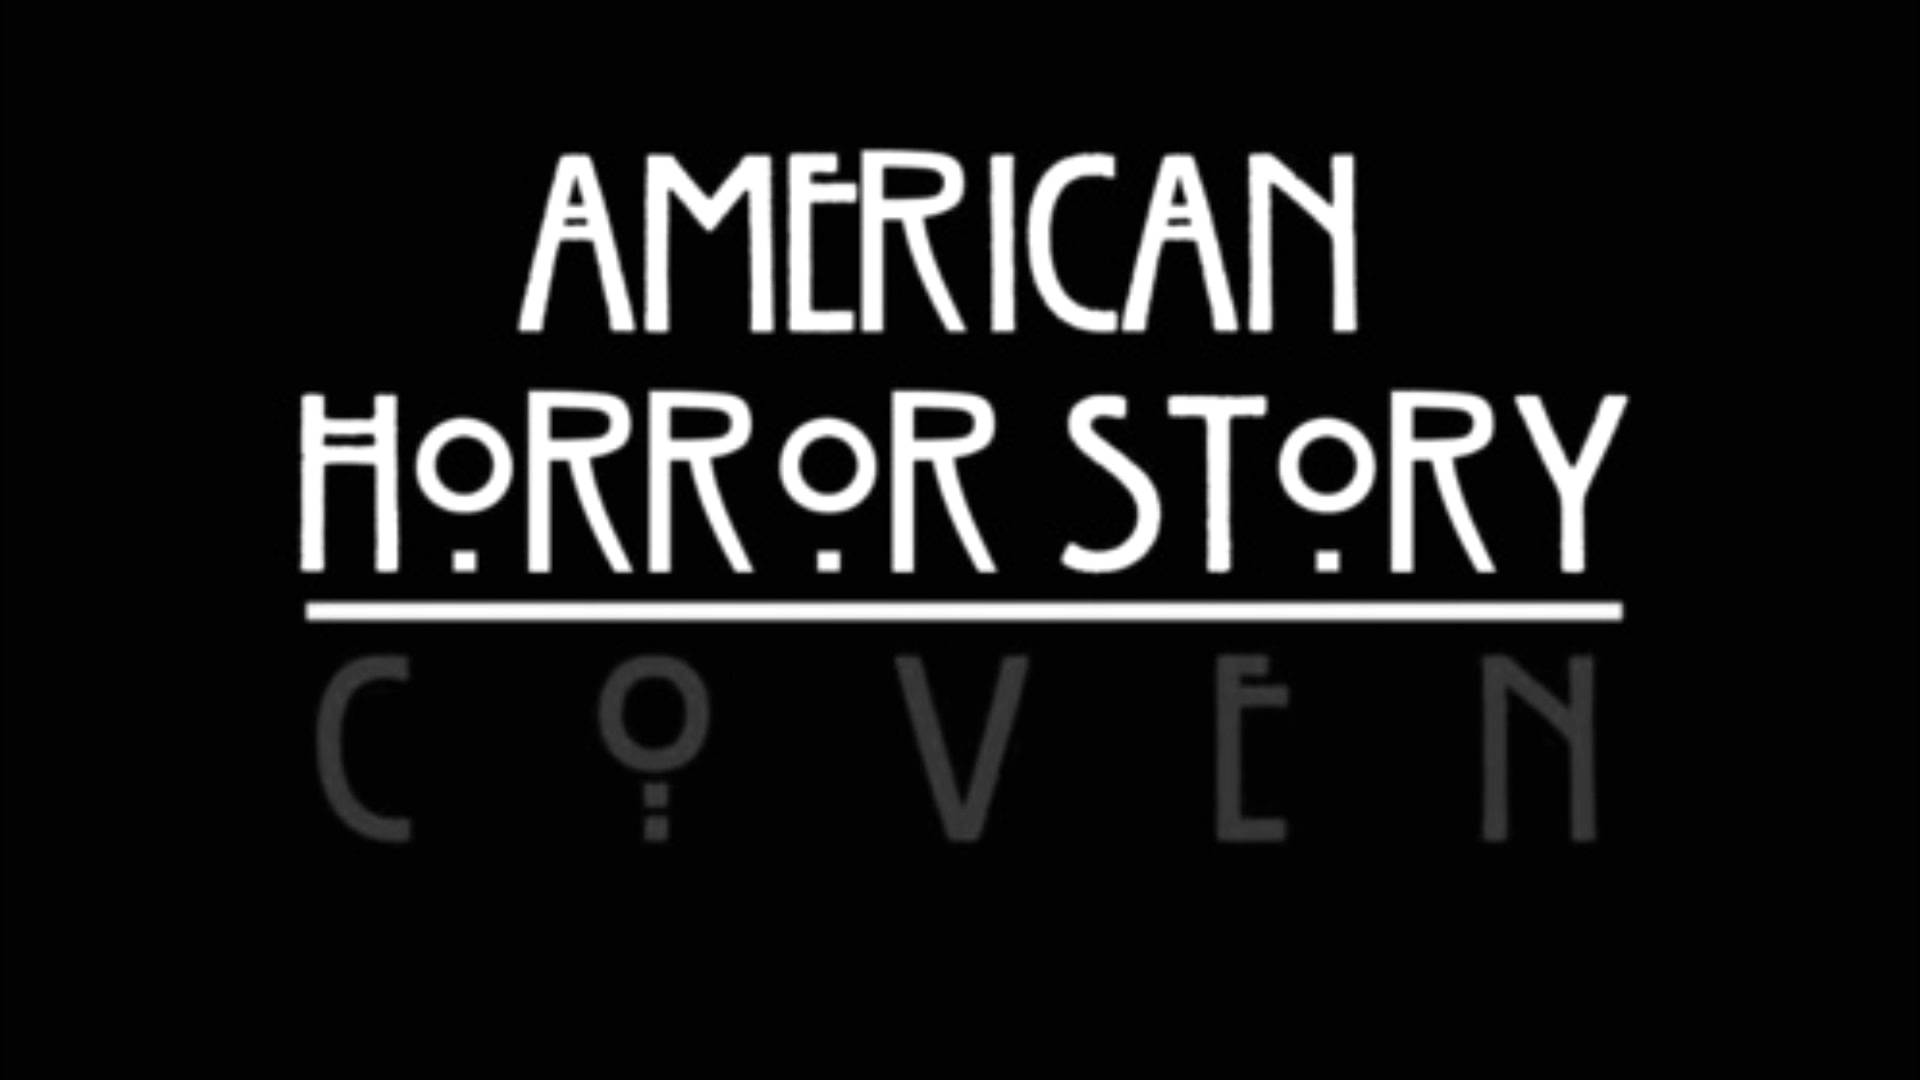 American Horror Story: Coven wallpapers, TV Show, HQ American Horror Story: Coven pictures